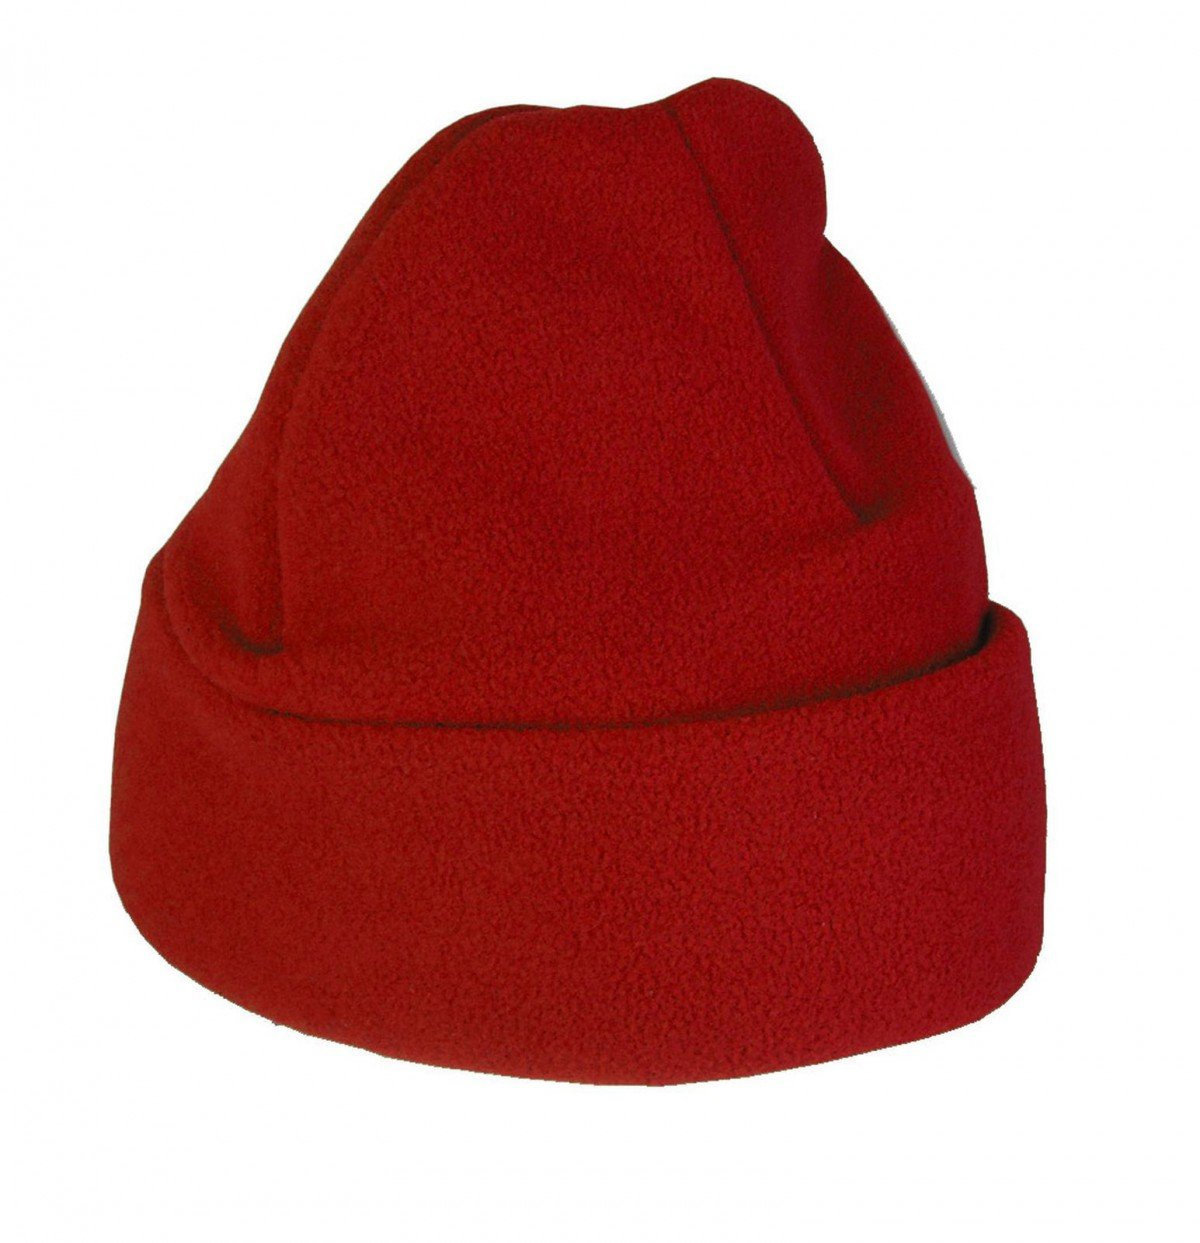 Childs Fleece Hat, Red Small